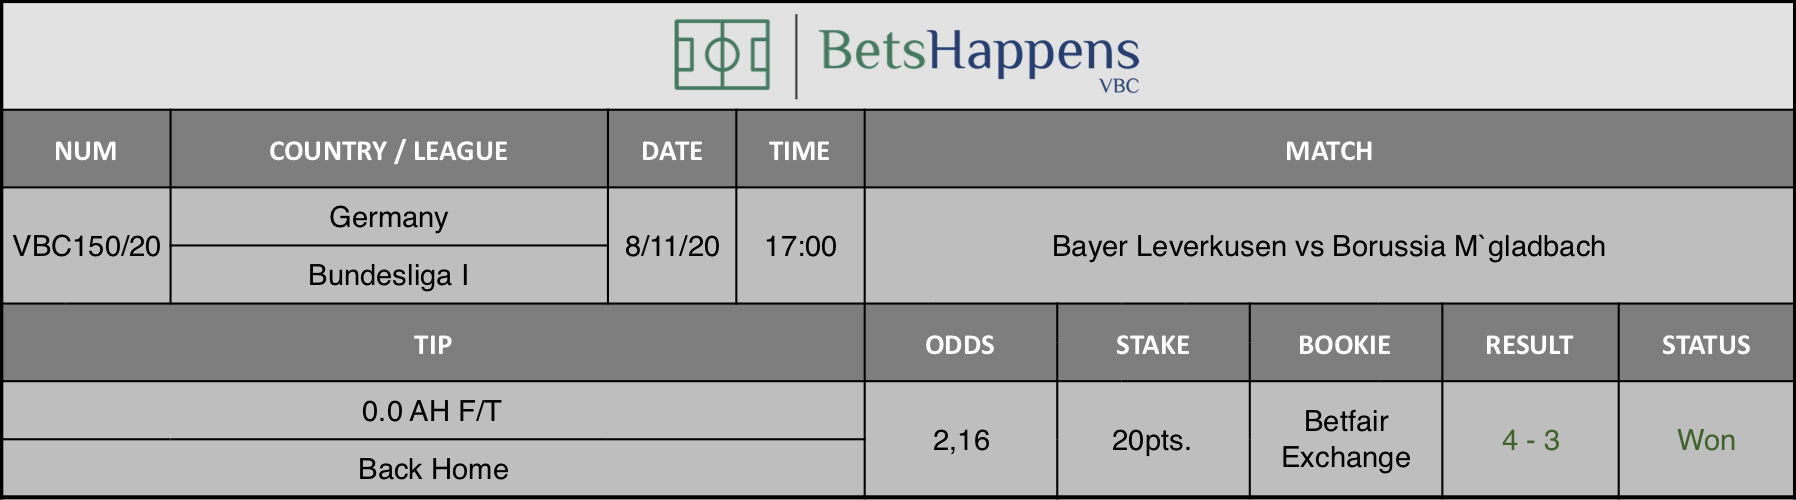 Results of our tip for the Bayer Leverkusen vs Borussia M`gladbach match where 0.0 AH F/T Back Home is recommended.